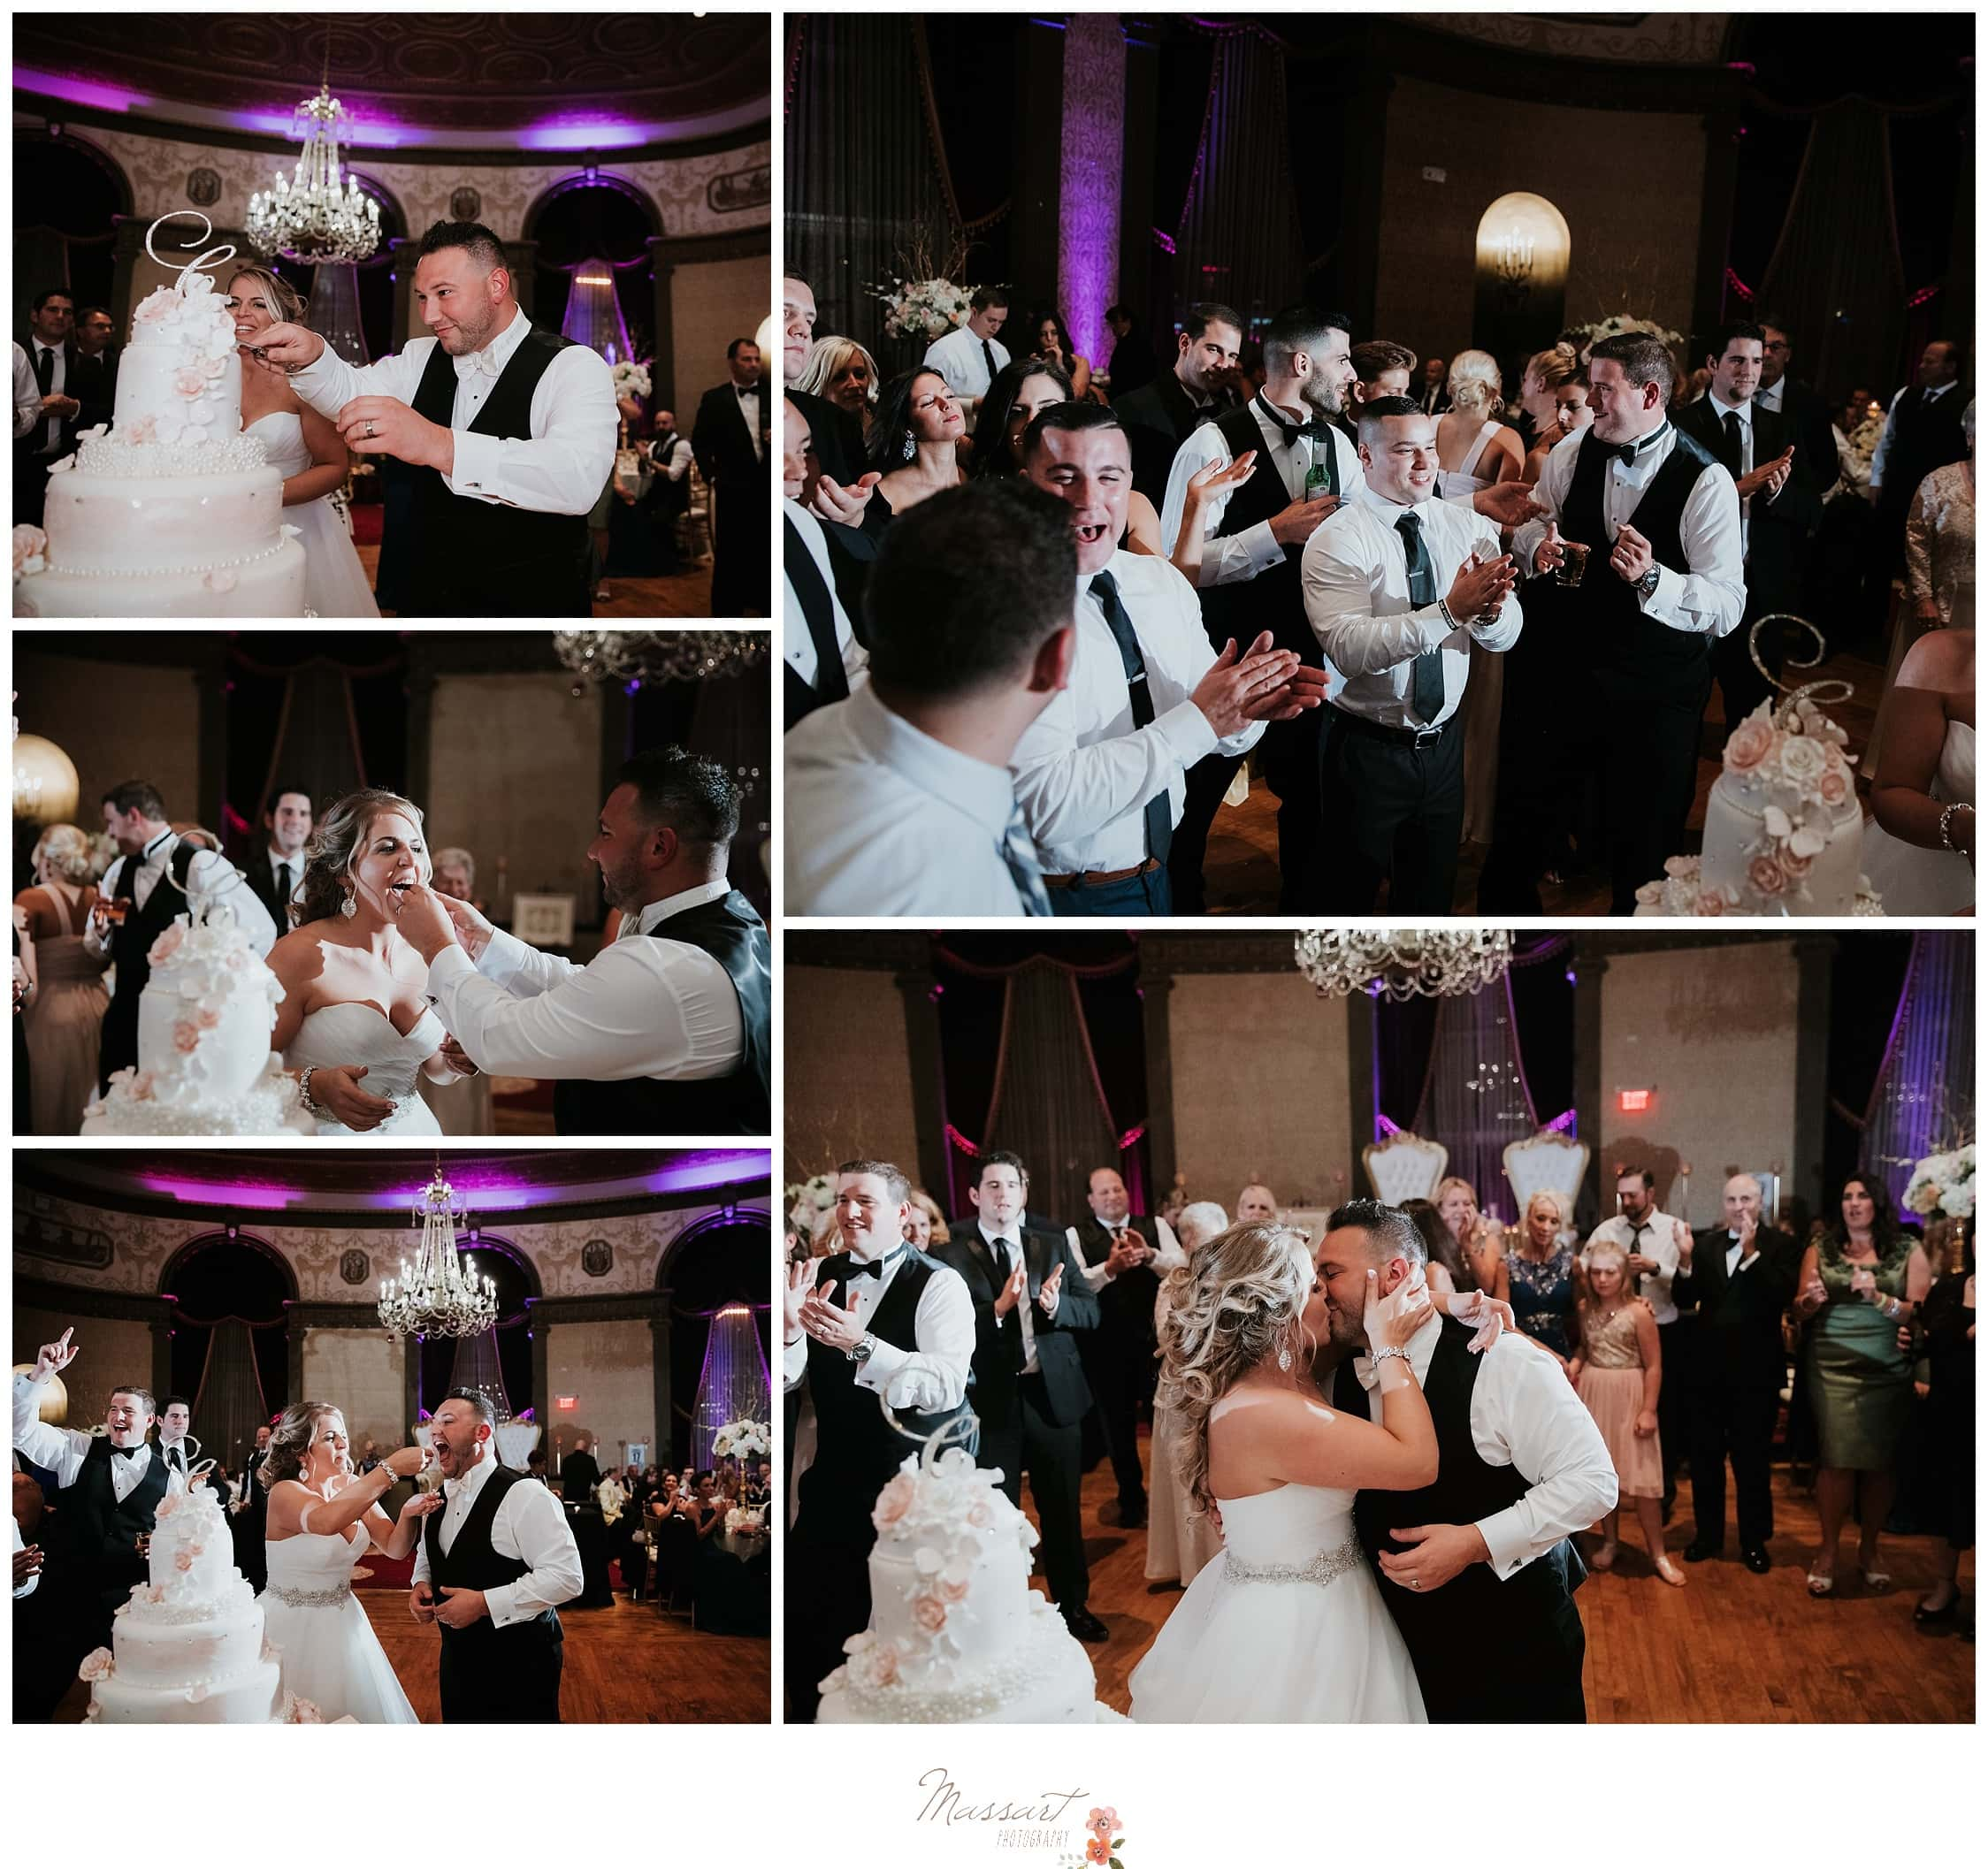 Bride and groom cut the cake during wedding reception photographed by Massart Photography RI